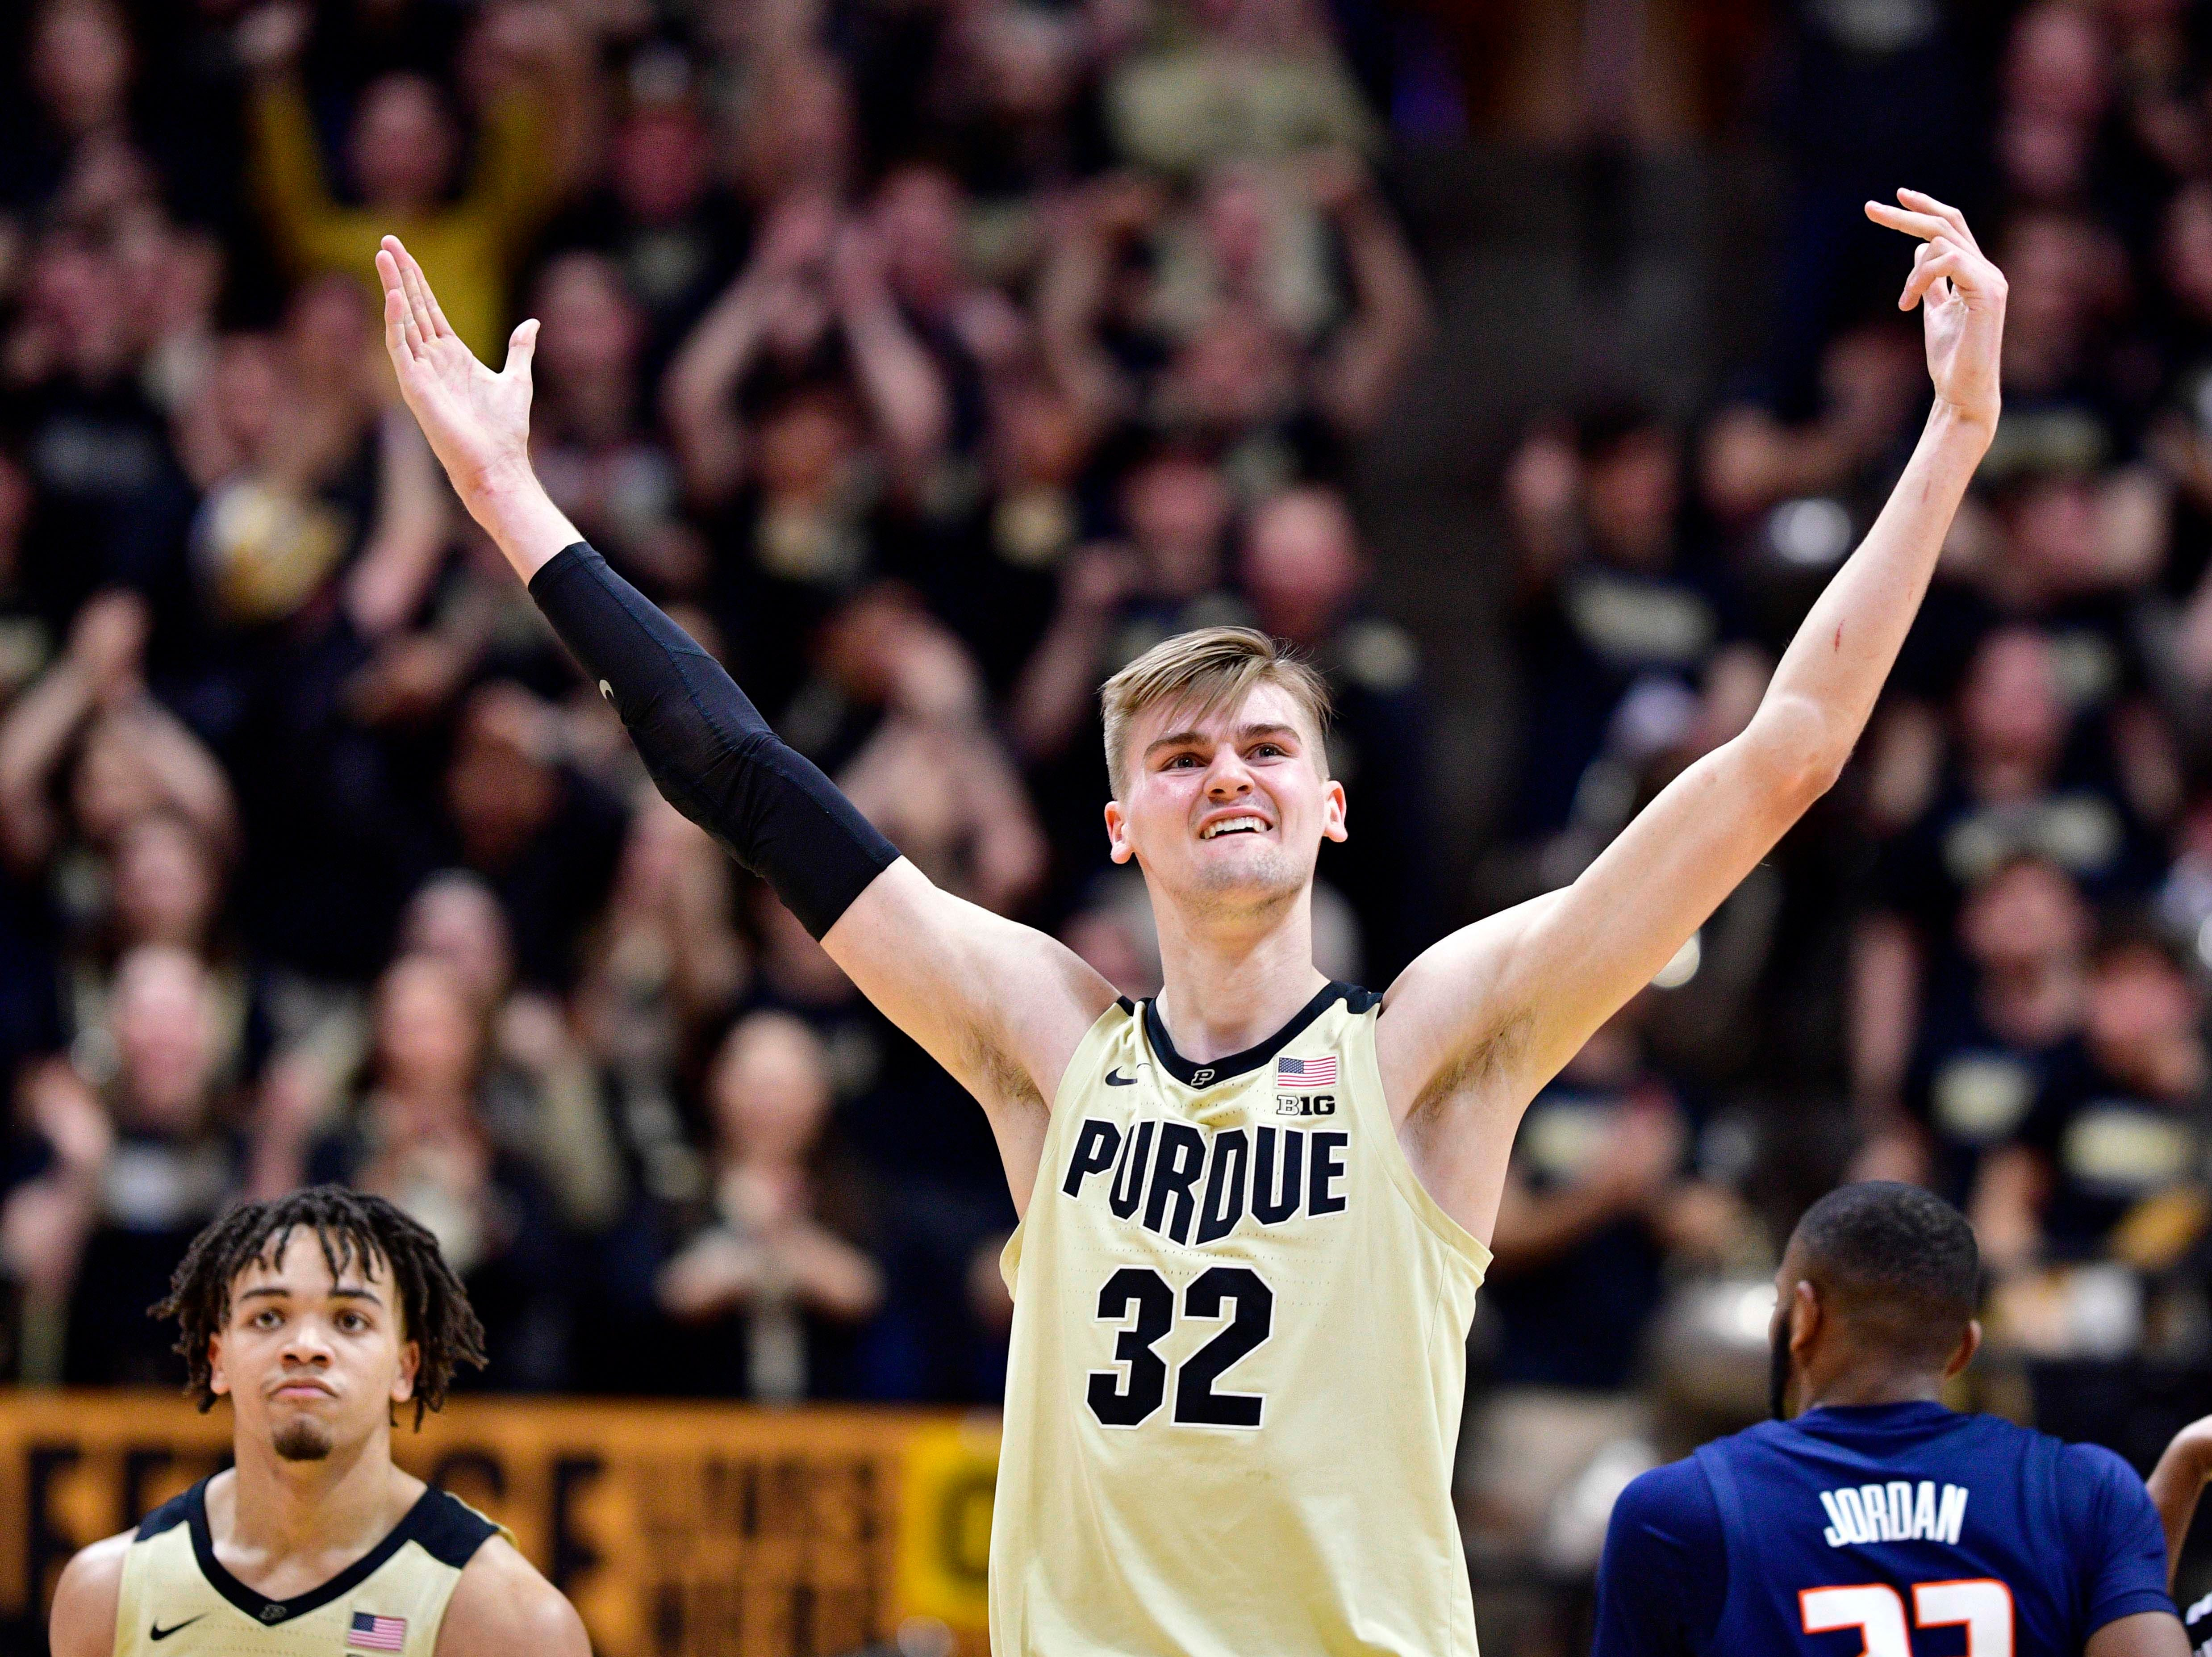 Feb 27, 2019; West Lafayette, IN, USA;Purdue Boilermakers center Matt Haarms (32) motions to the student section after a score during the second half of the game at Mackey Arena. The Purdue Boilermakers defeated the Illinois Fighting Illini 73 to 56. Mandatory Credit: Marc Lebryk-USA TODAY Sports